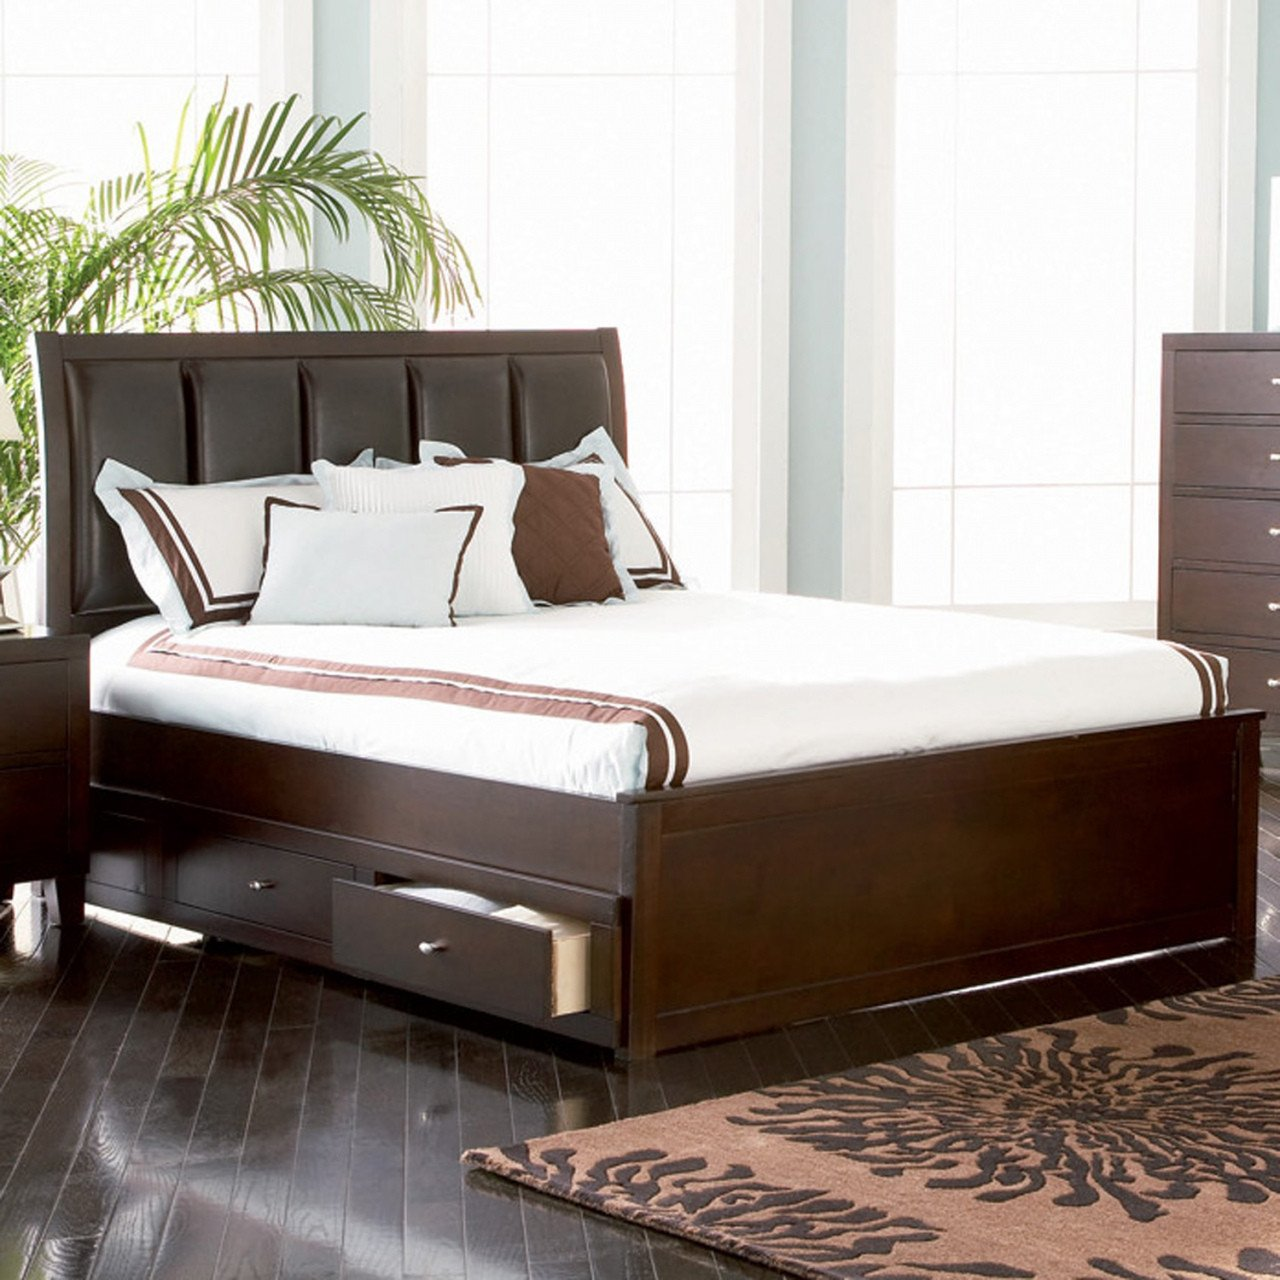 Log King Size Bedroom Set New King Size Bed Frame with Drawers — Procura Home Blog